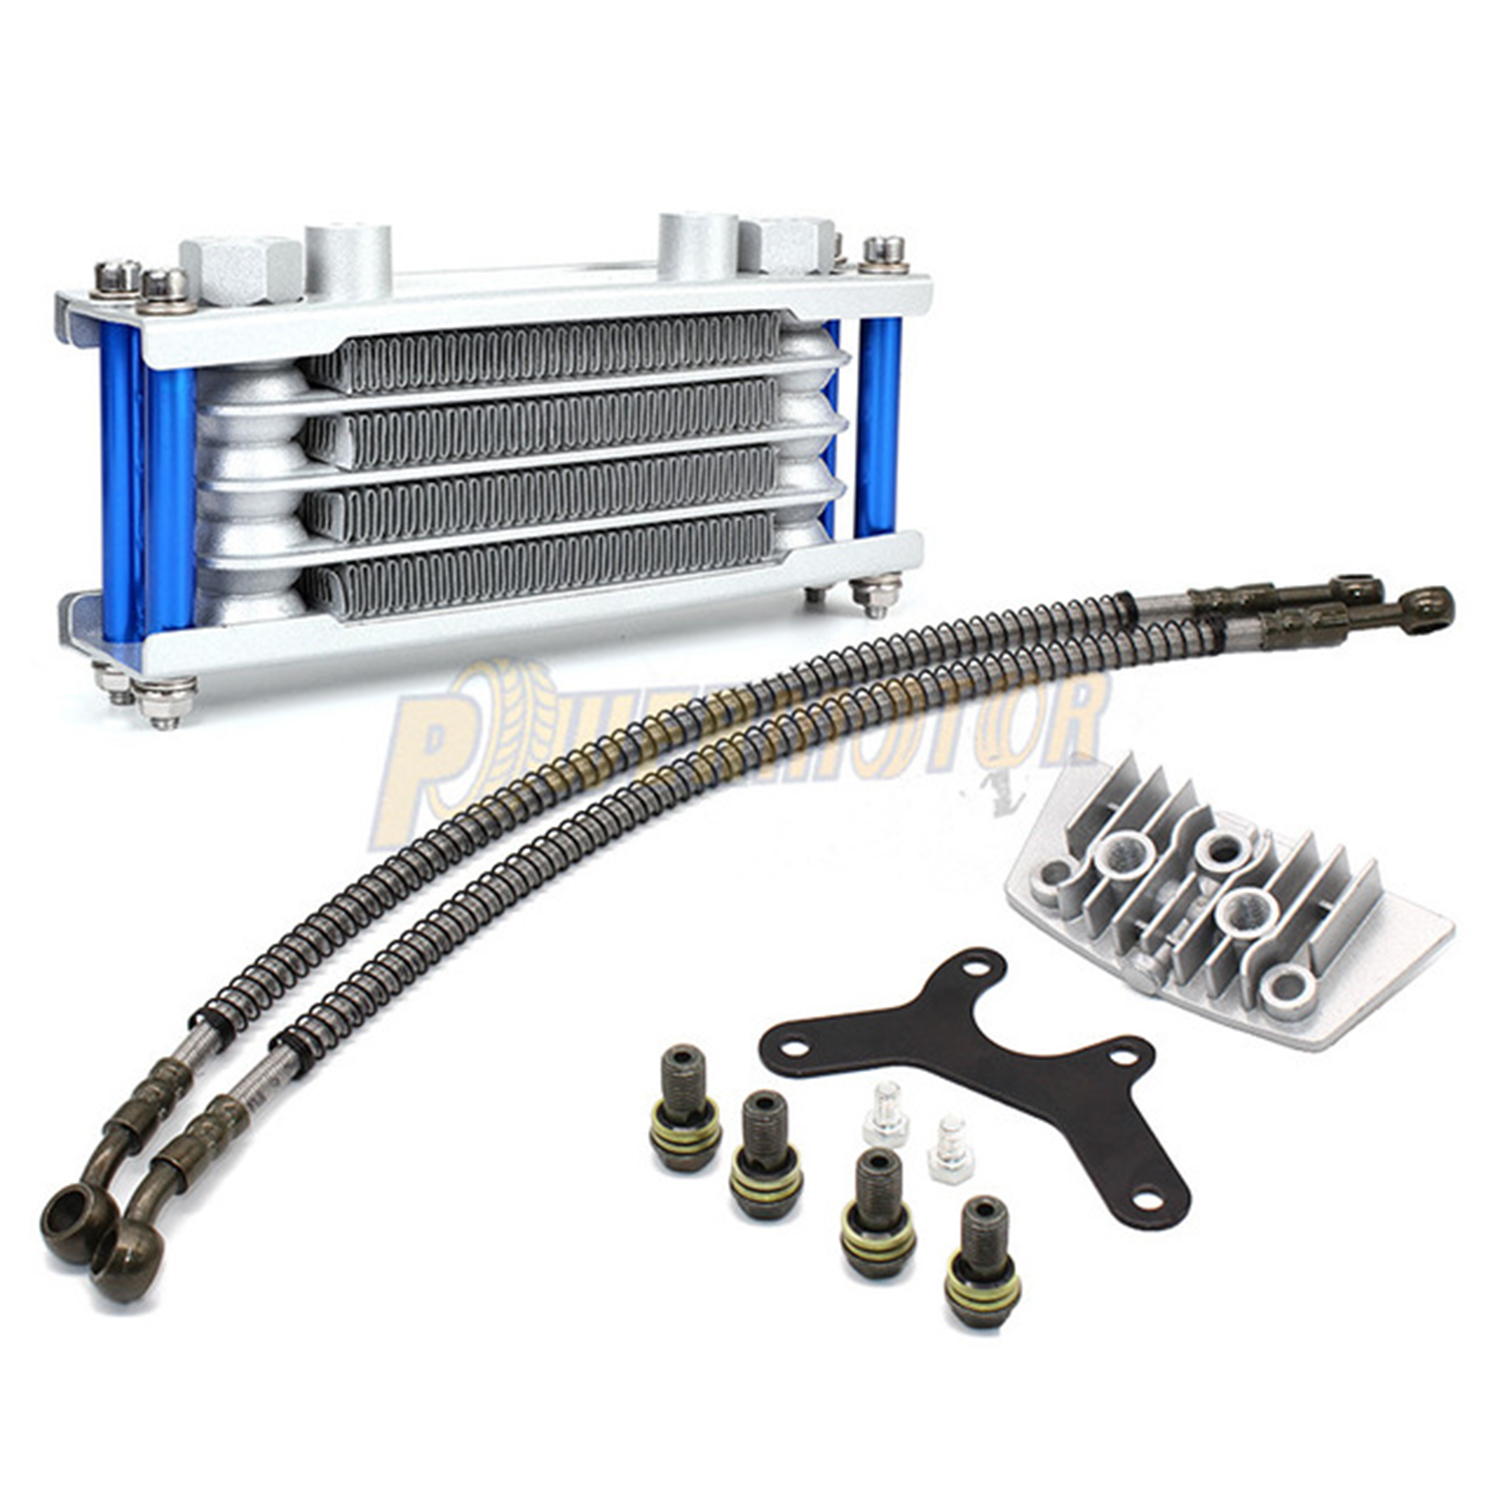 Motorcycle Oil Cooling Cooler Radiator for 50cc 70cc 90cc 110cc Horizontal Engine Chinese Made Dirt Pit Monkey Bike ATV